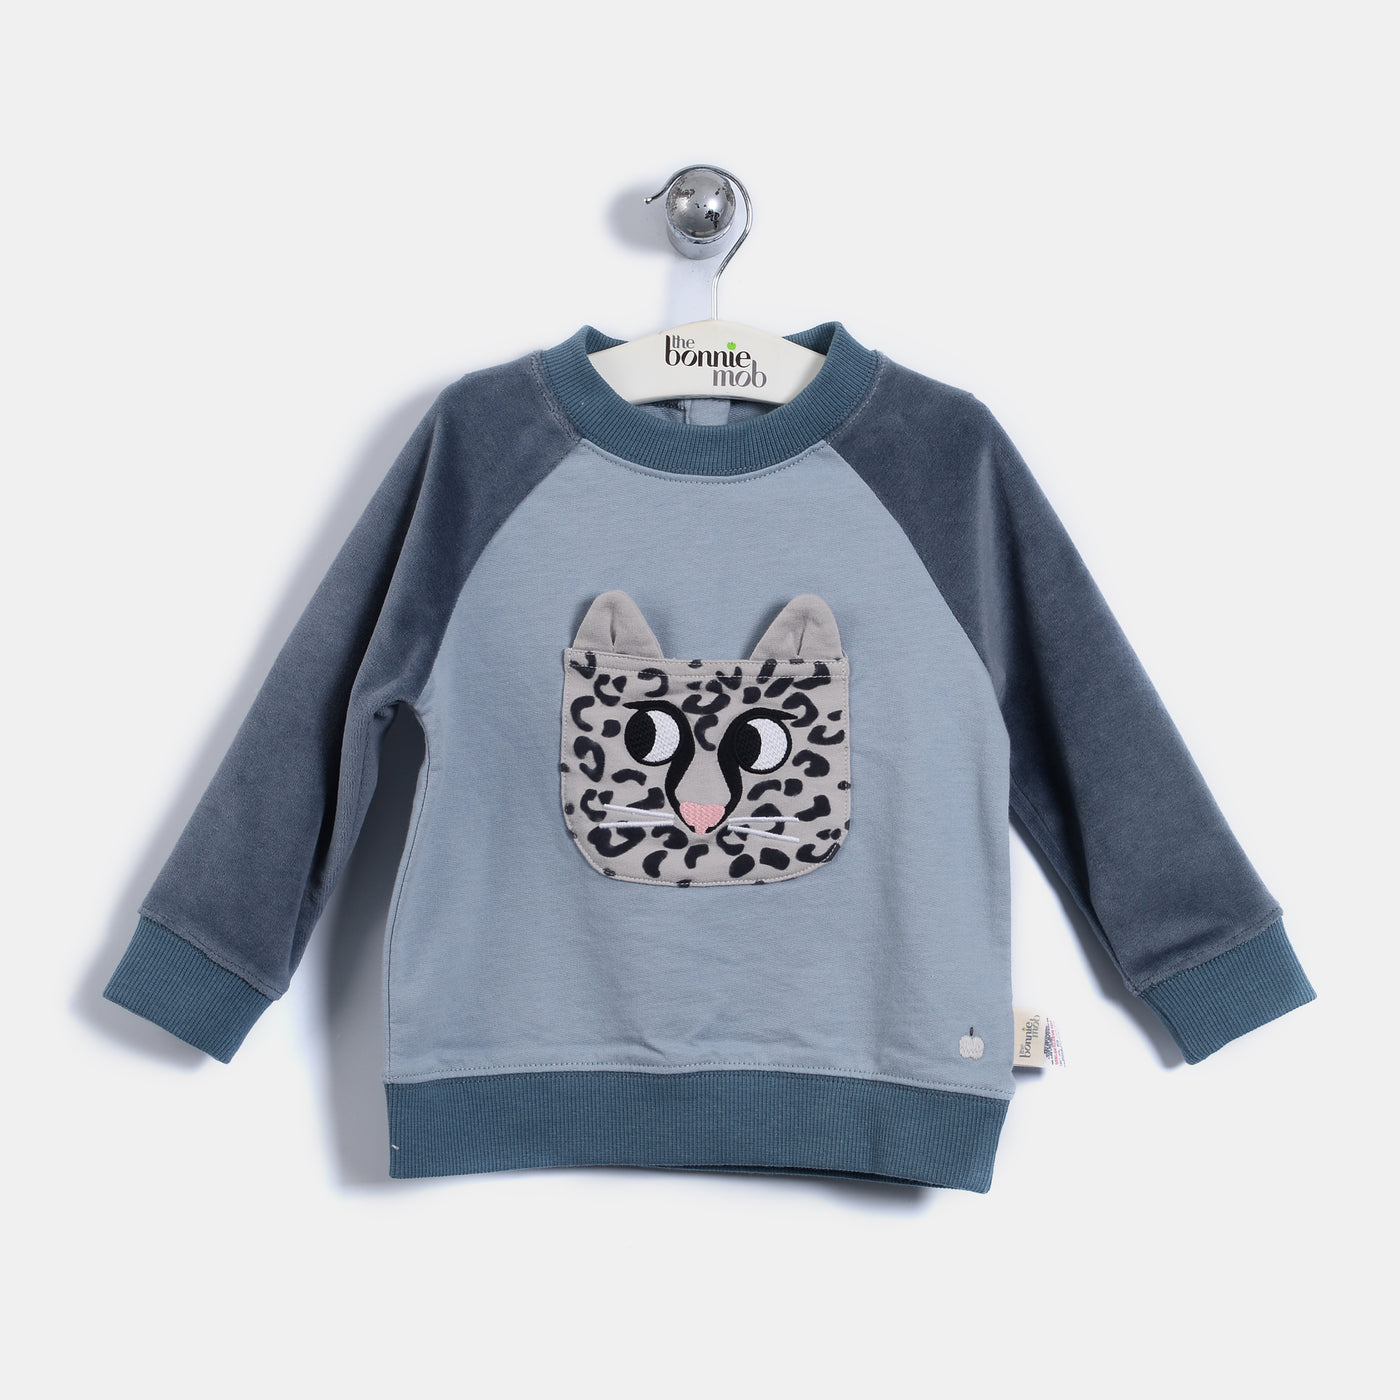 L-LENNY - Leopard Pocket Sweatshirt - Kids Boy - Vintage blue